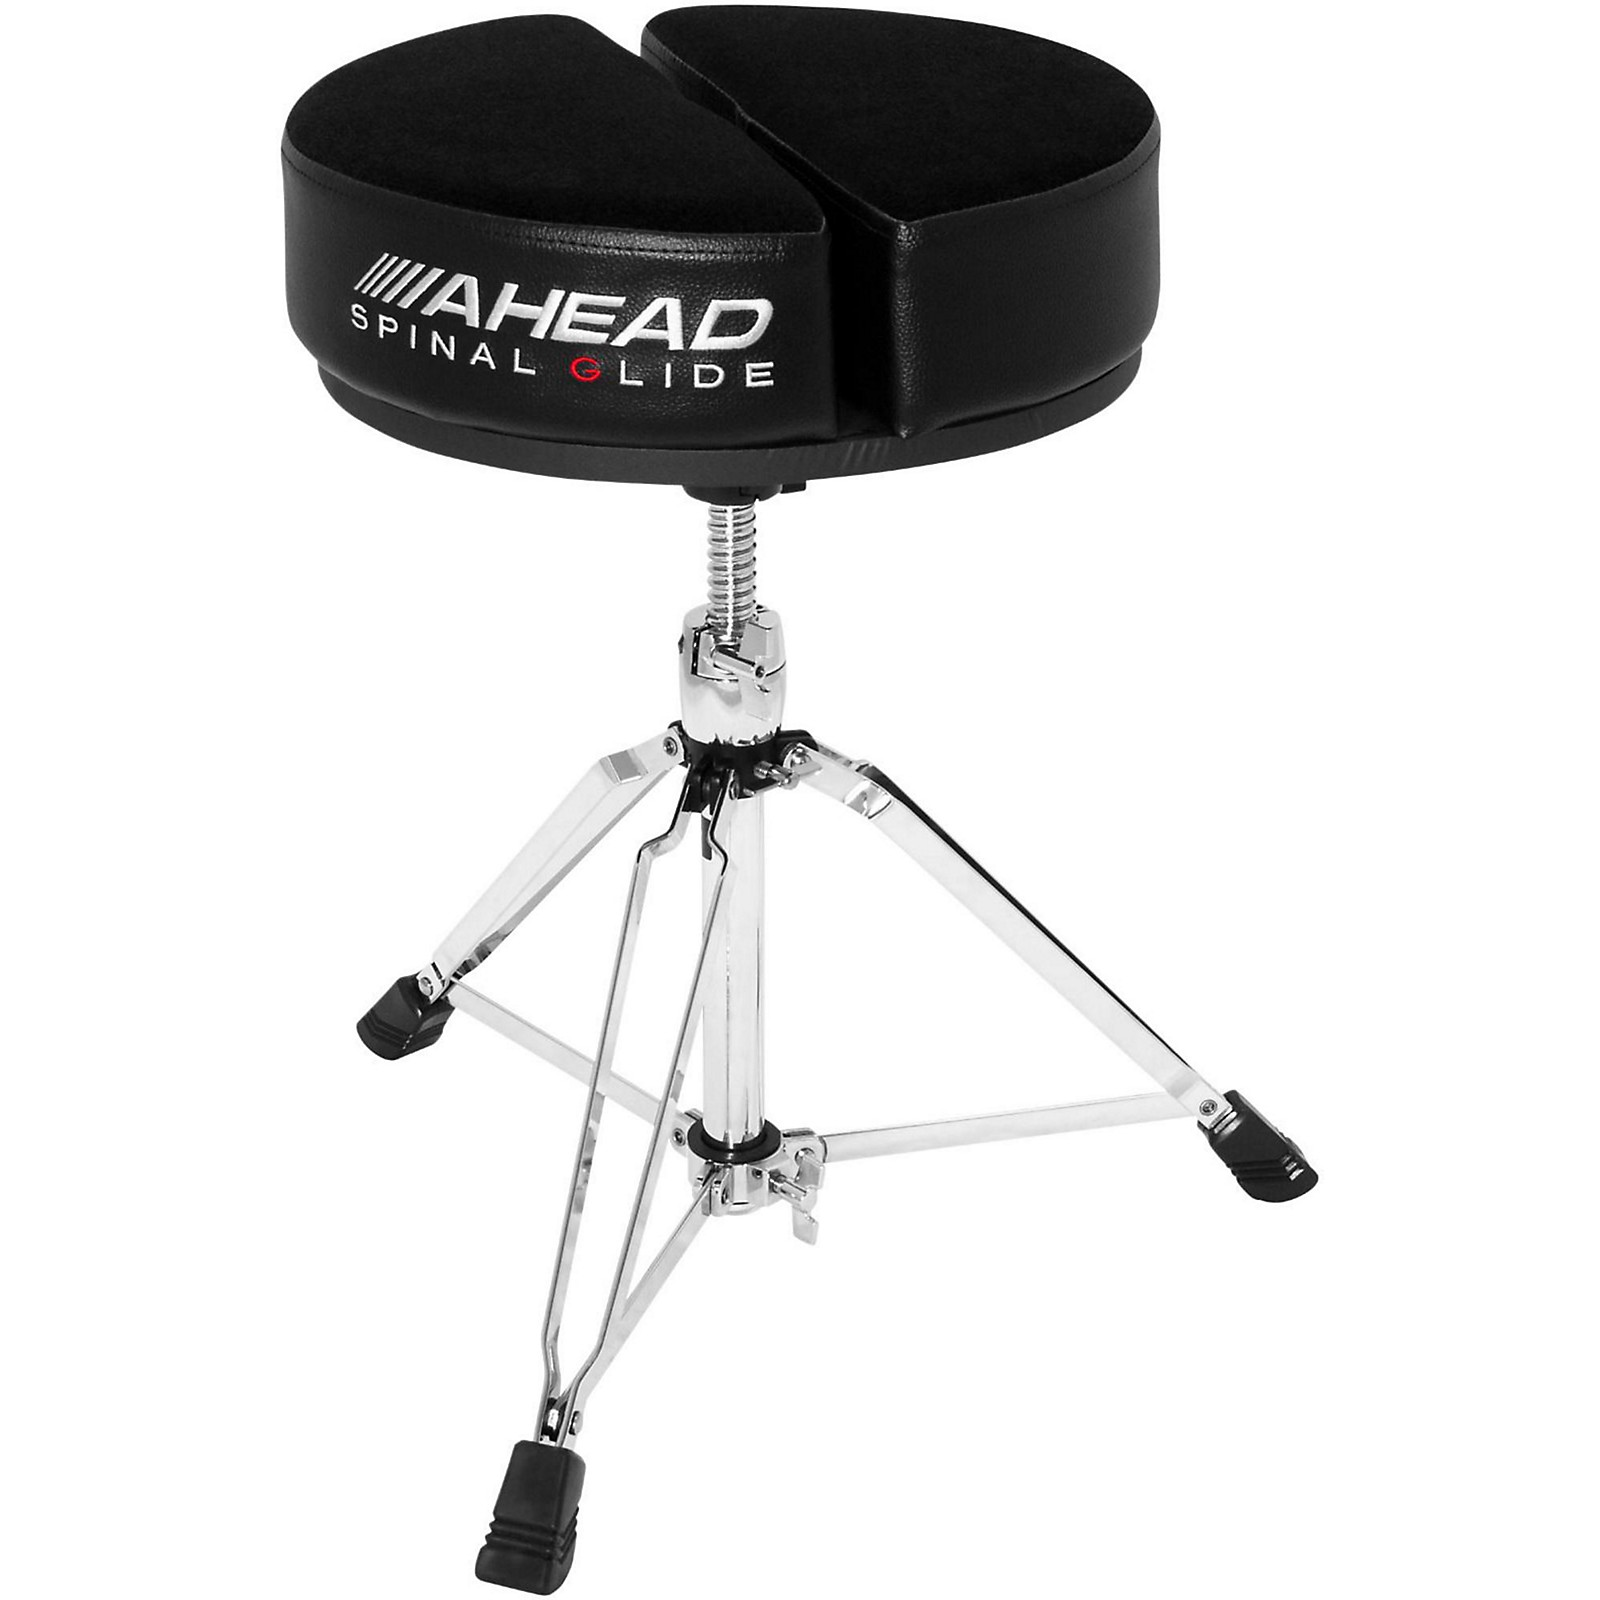 Ahead Spinal G Round Top Throne